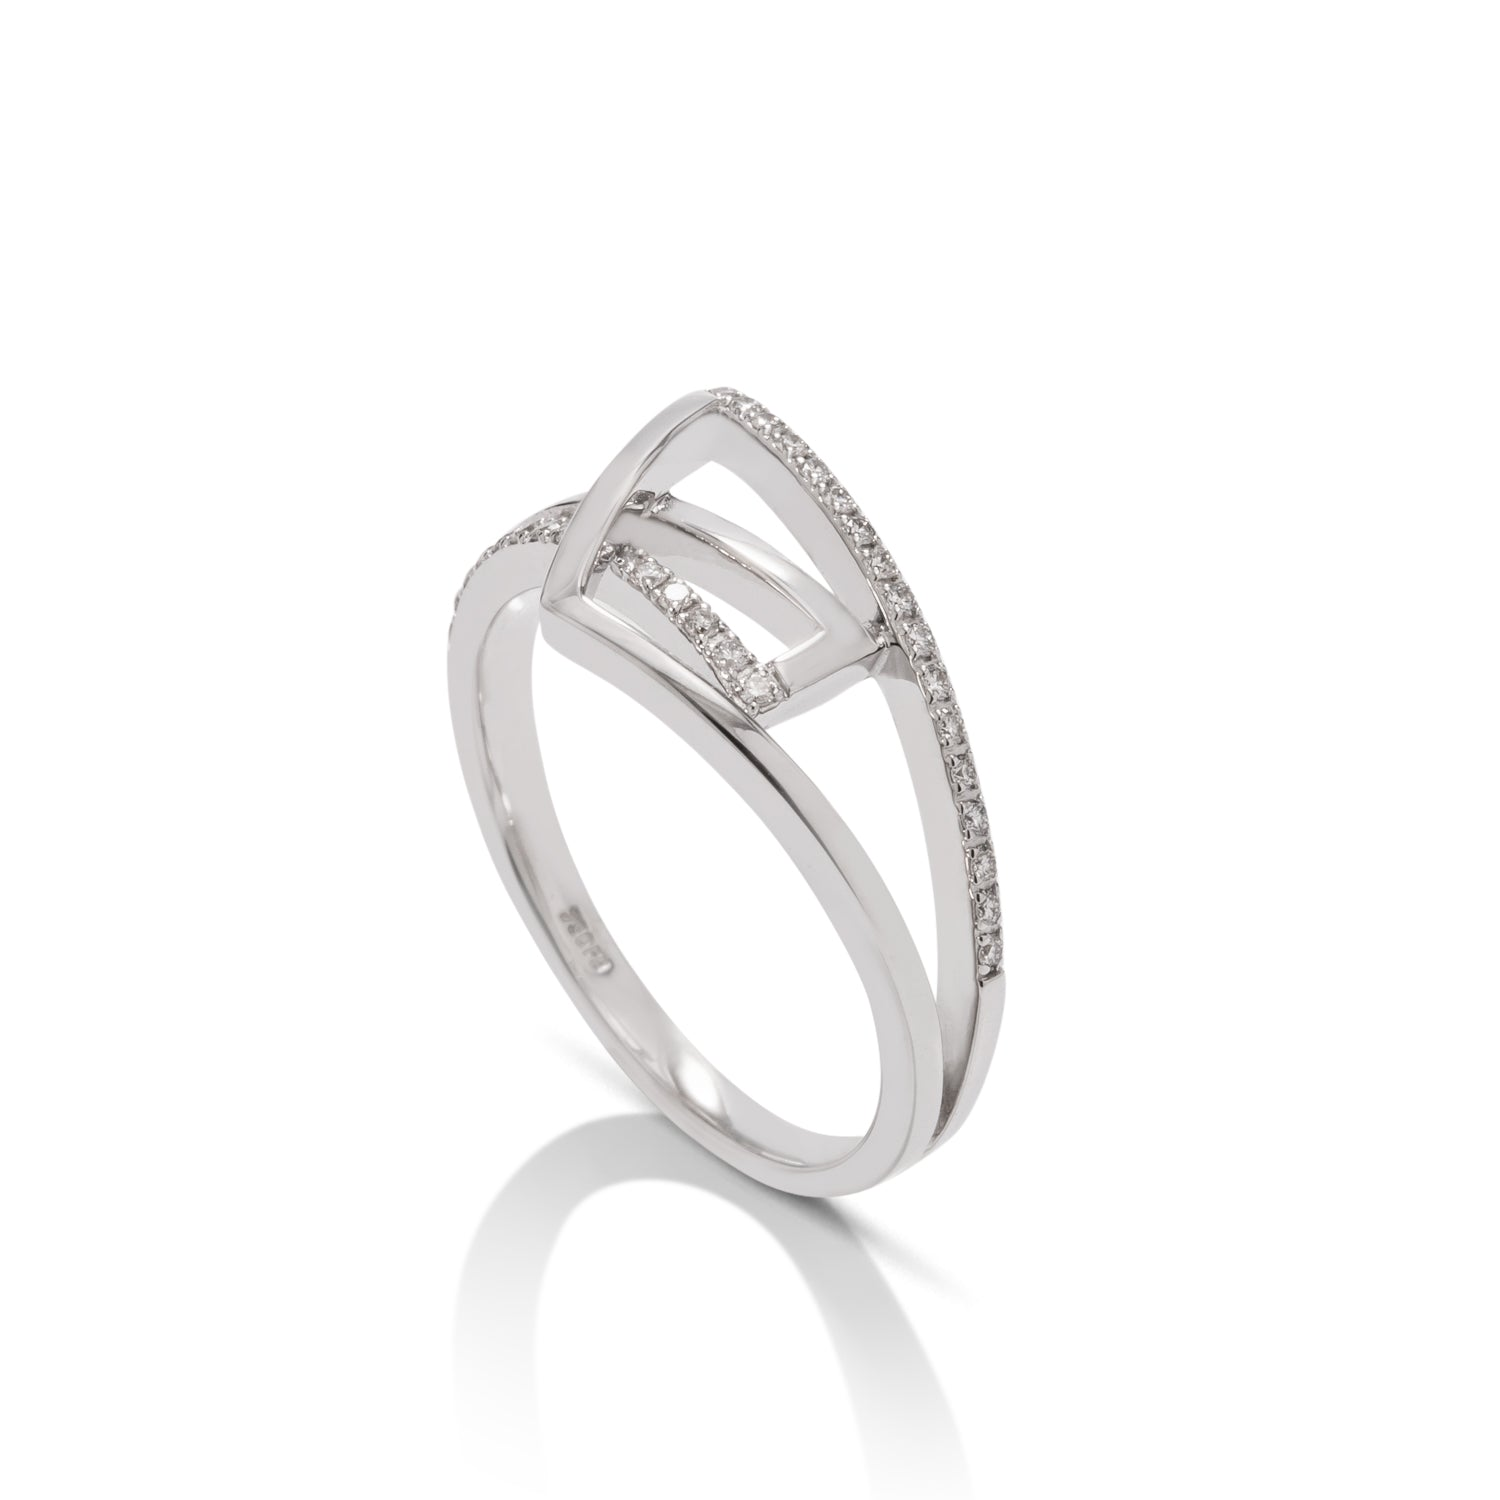 18k White Gold Fashion Diamond Ring - Charles Koll Jewellers